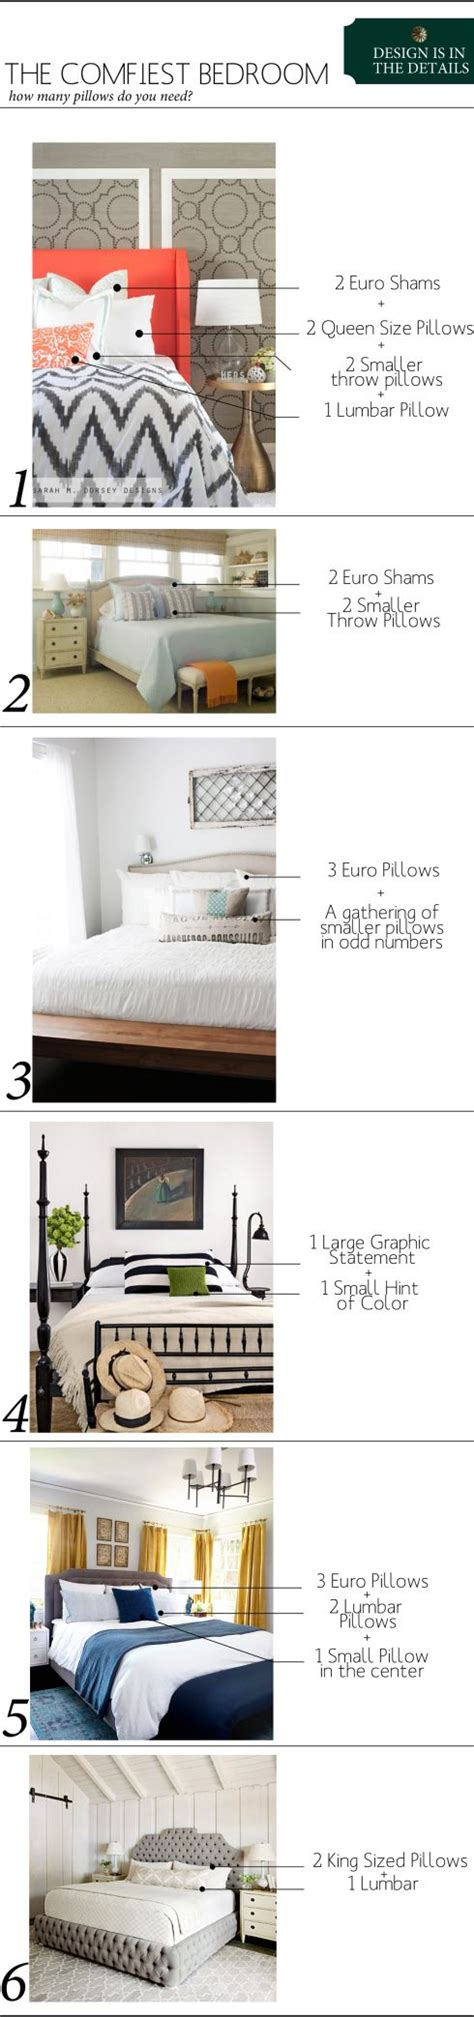 Where Do I Take Mattress by 20 Best Images About Headboard Pillow Mattress Guide On